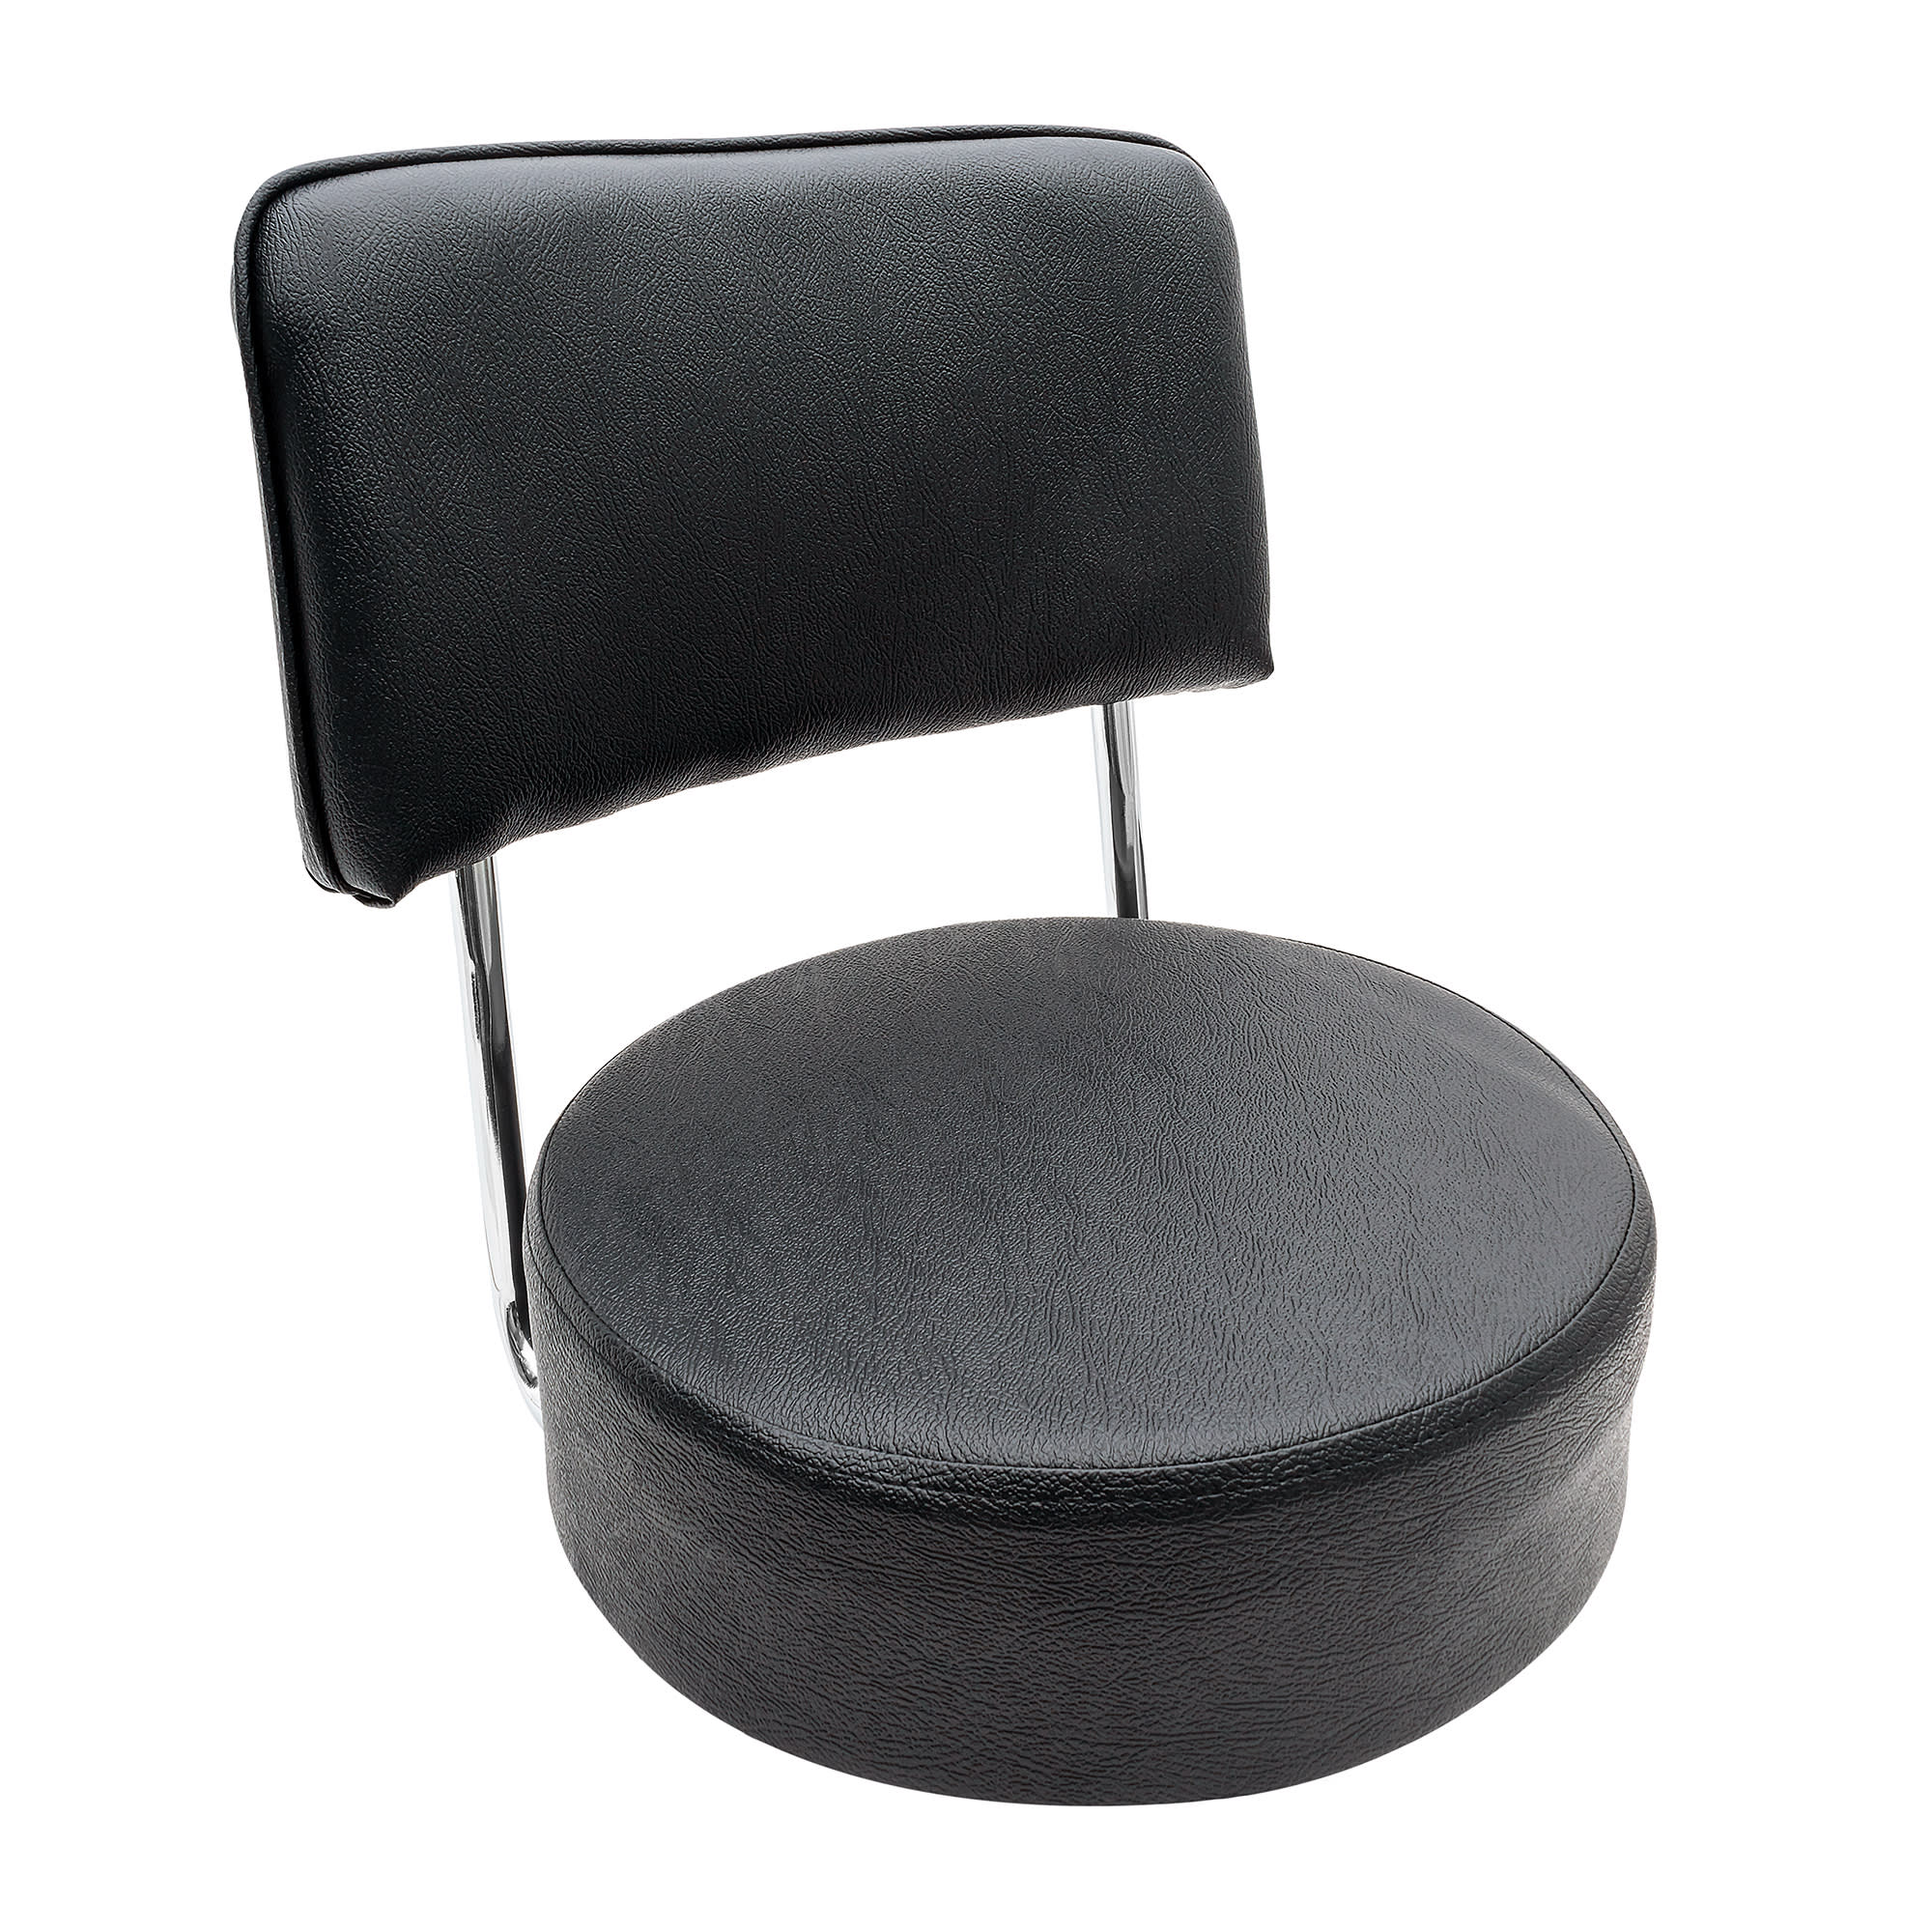 Royal Industries ROY 7715 SB Replacement Open Back Bar Stool Seat, Black